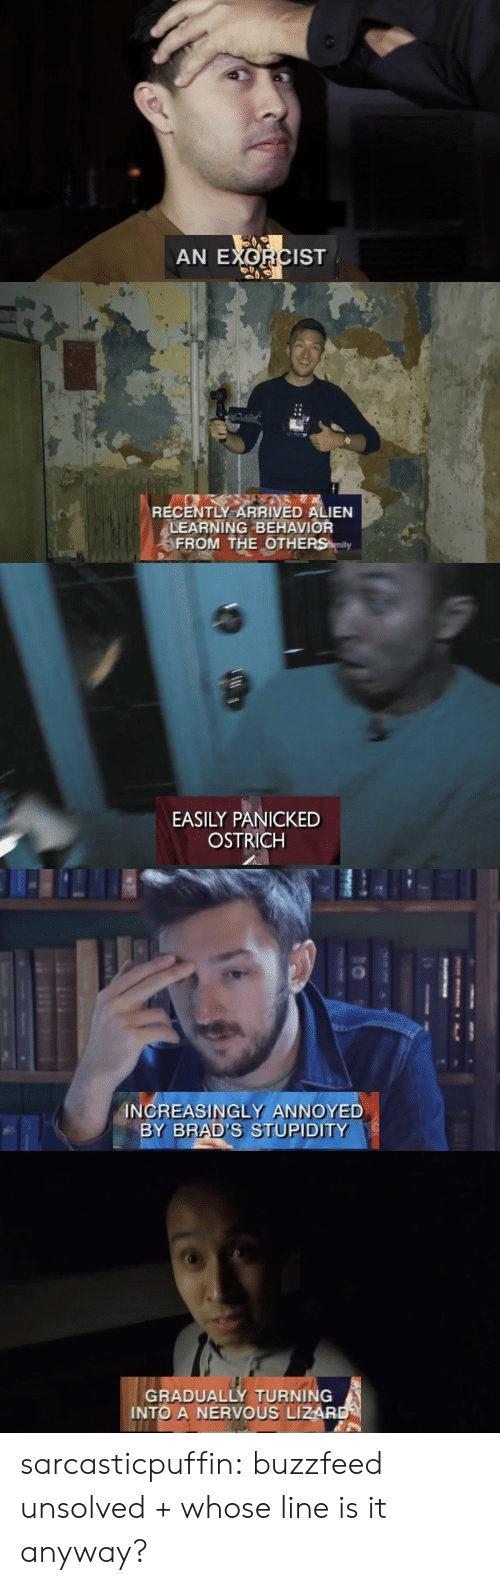 exorcist: AN EXORCIST   RECENTLY ARRIVED ALIEN  LEARNING BEHAVIOR  FROM THE OTHERS mily   EASILY PANICKED  OSTRICH   INCREASINGLY ANNOYED  BY BRAD'S STUPIDITY   GRADUALLY TURNING  INTO A NERVOUS LIZAR sarcasticpuffin: buzzfeed unsolved + whose line is it anyway?